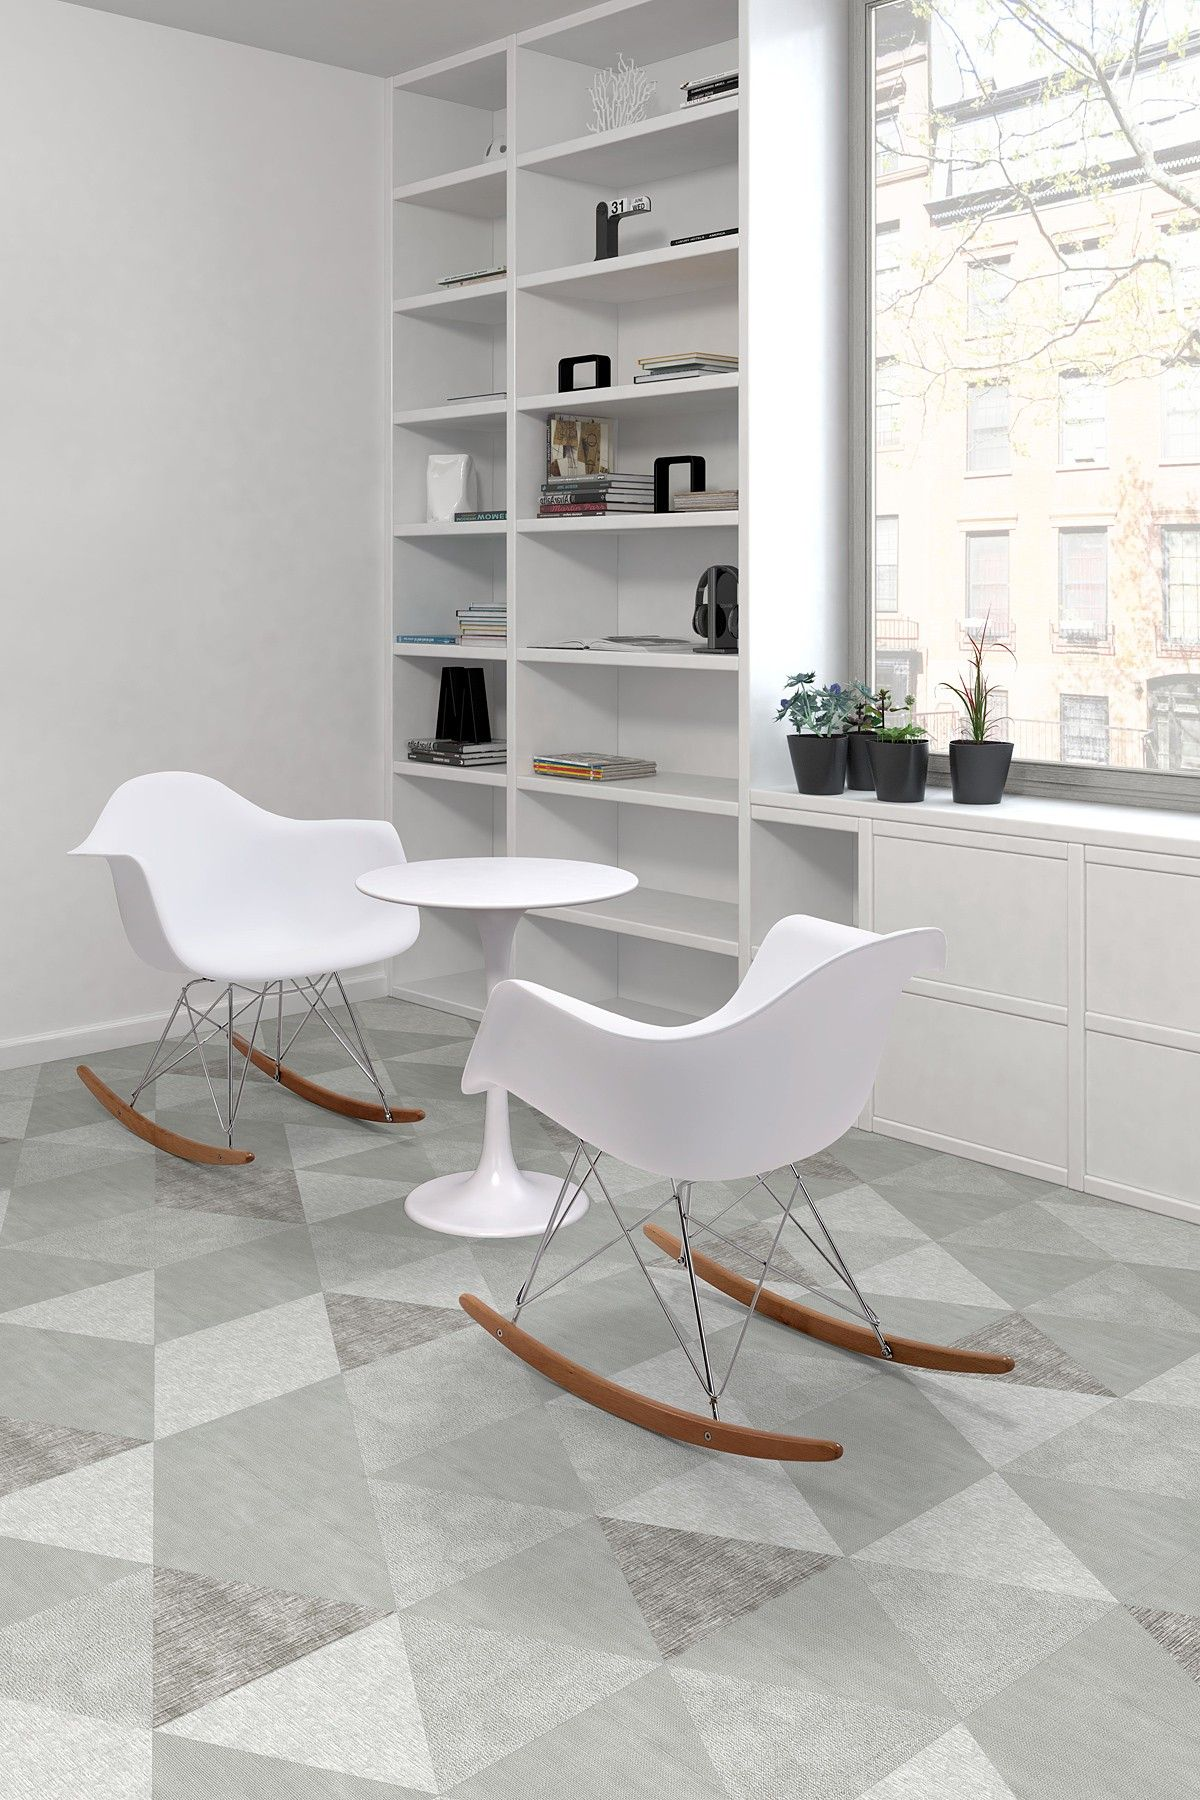 White Rocket Chairs | TRIANGLES | Pinterest